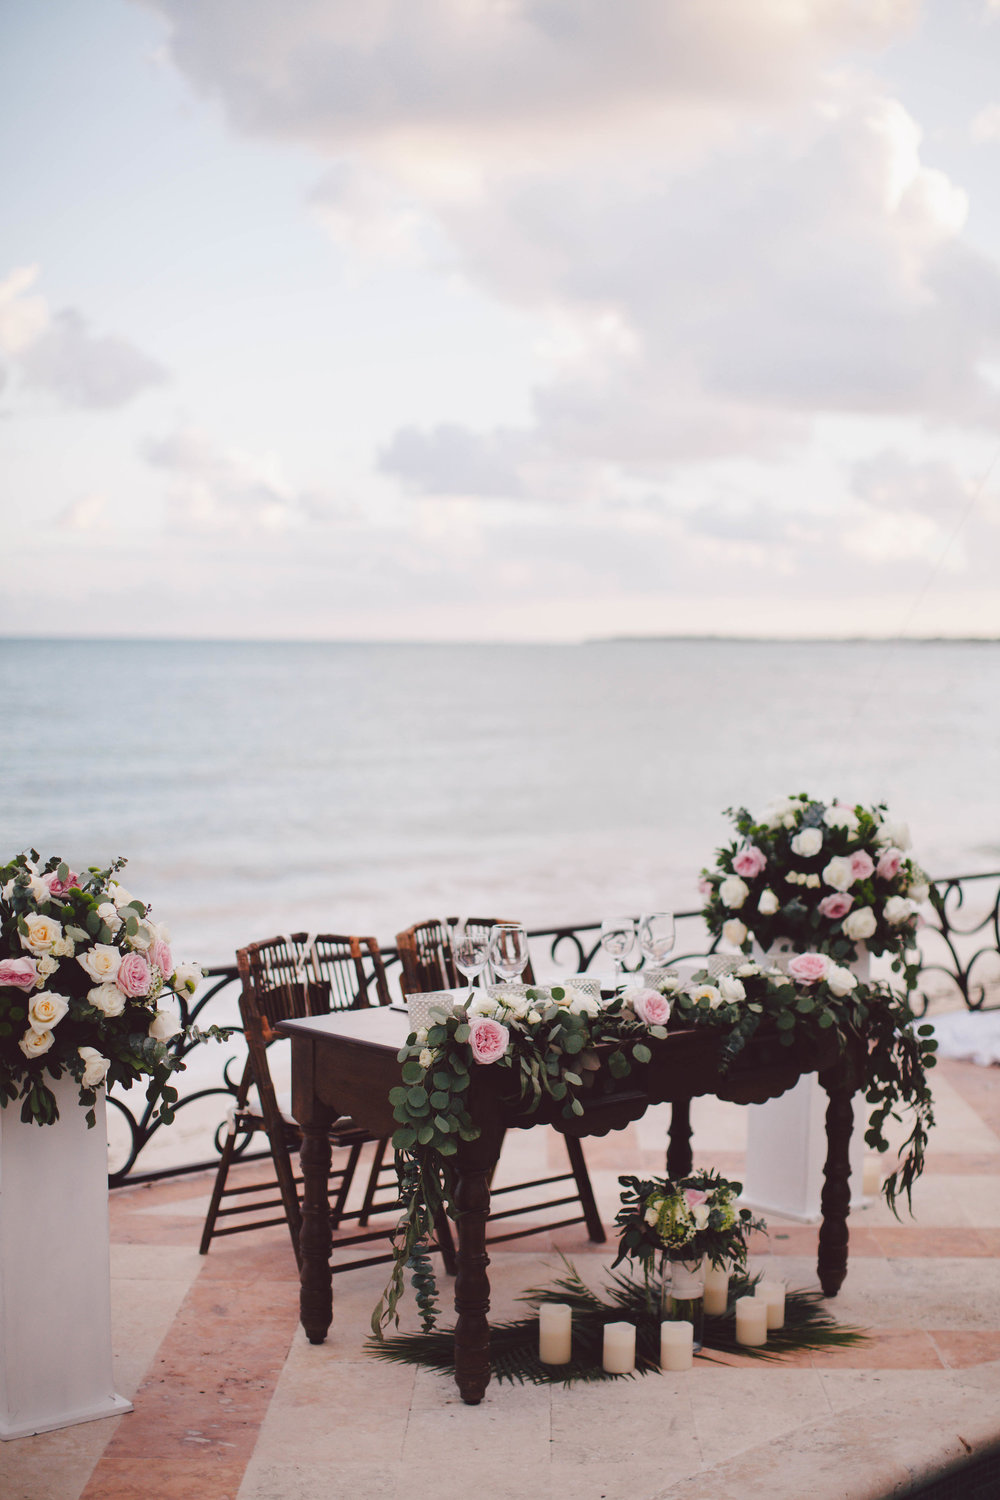 mexico_wedding_cancun_villa_la_joya_evangeline_lane_114.jpg